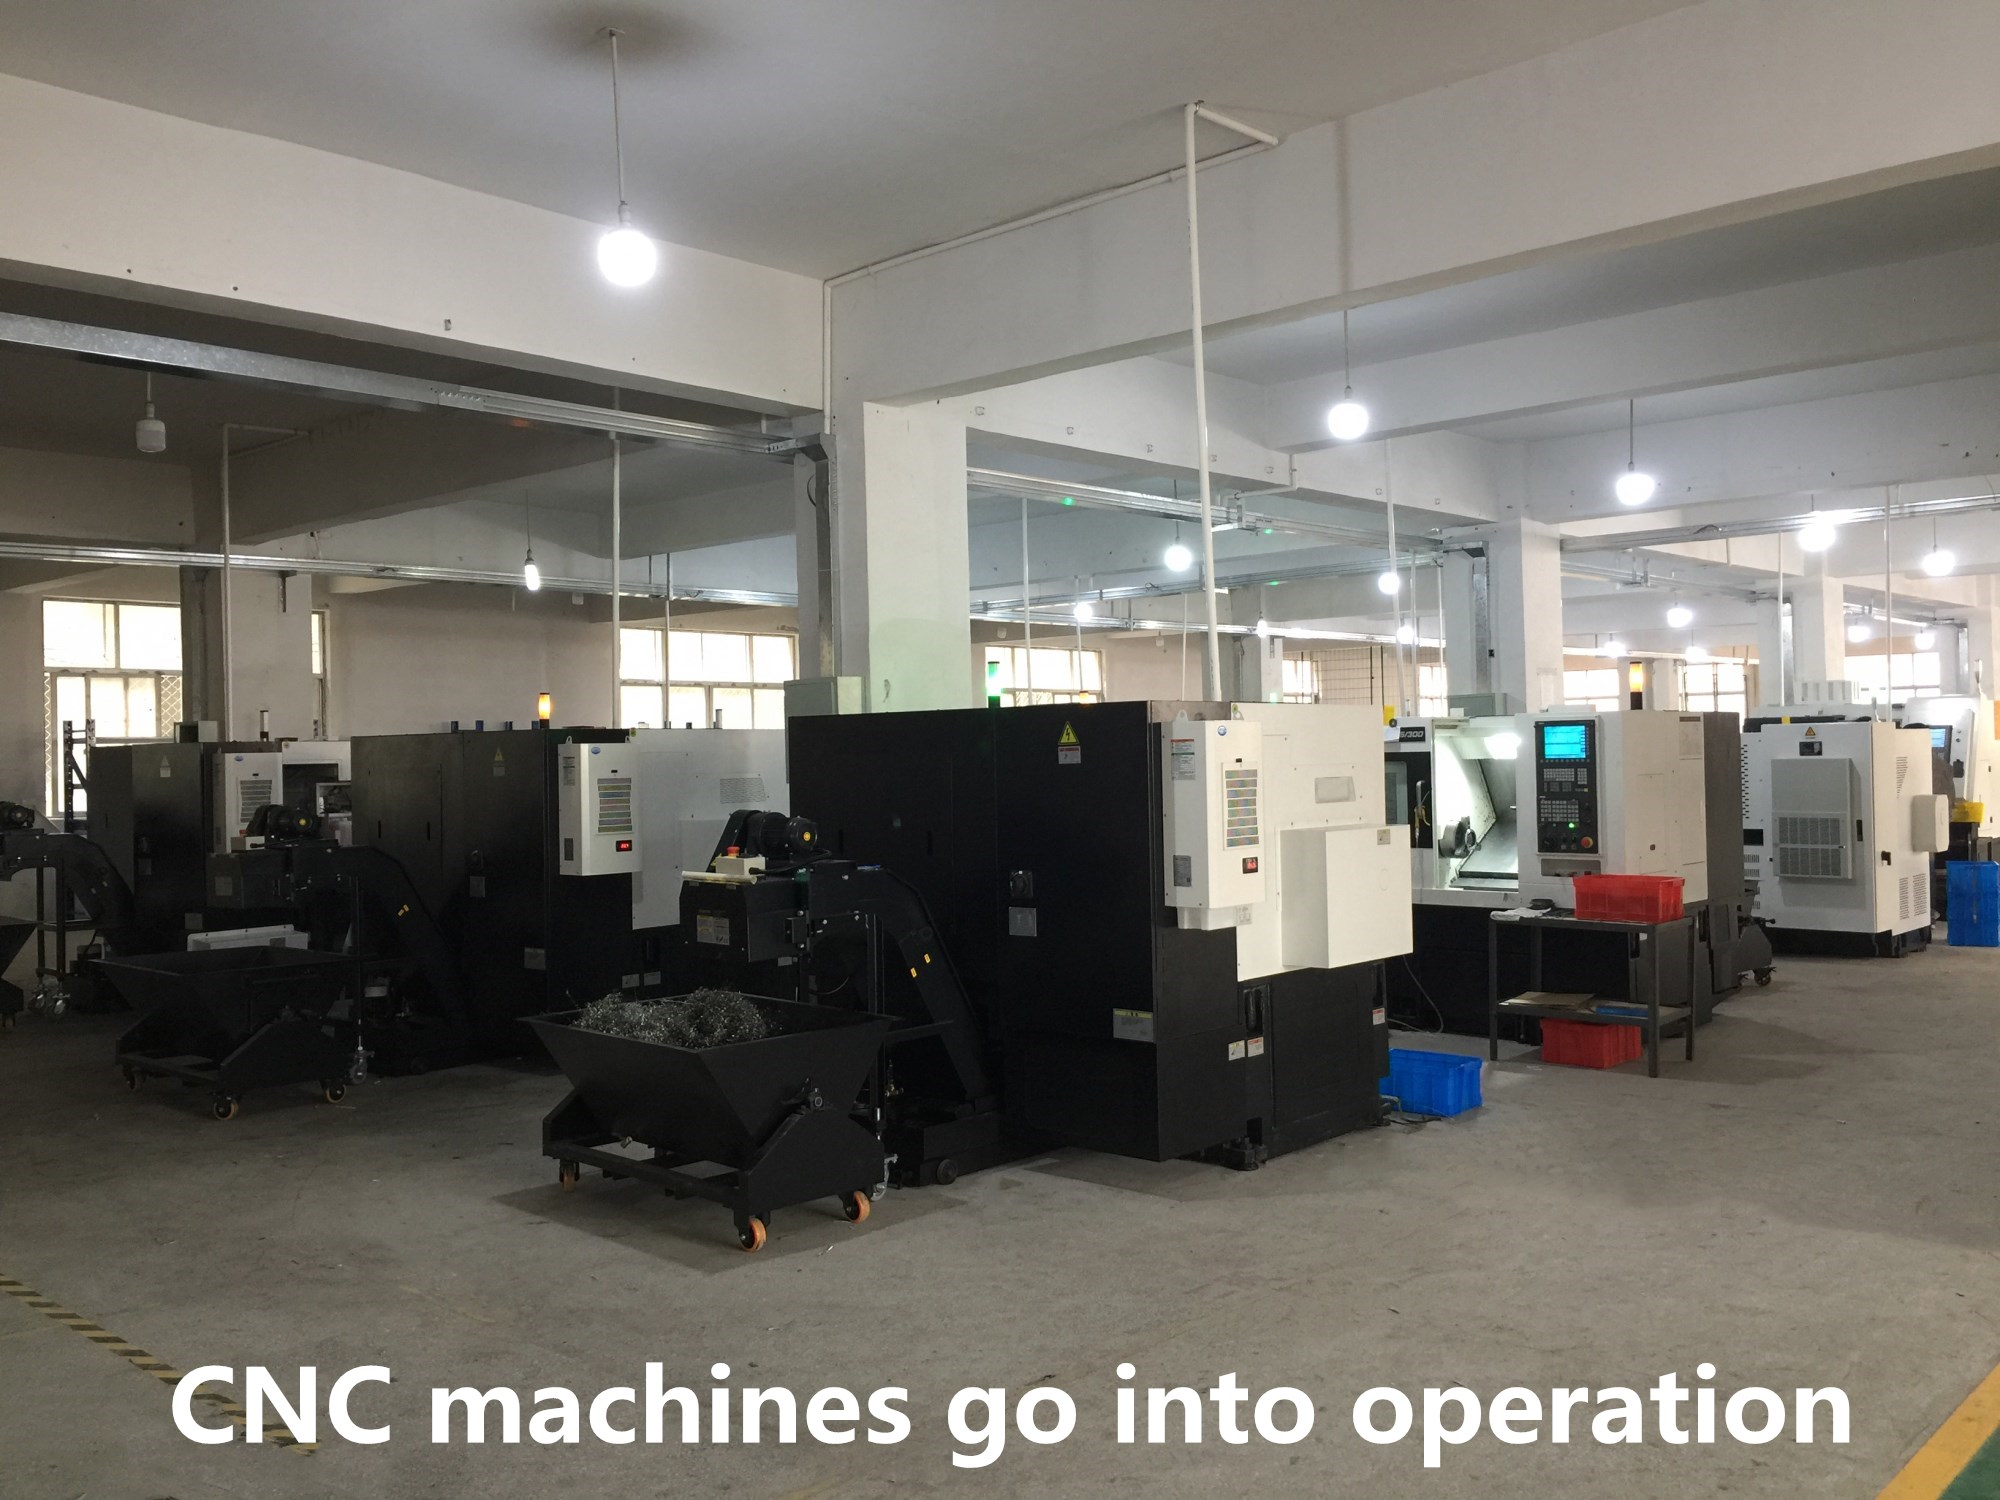 Big News!QILI Imported 40PCS High Precision CNC Machines